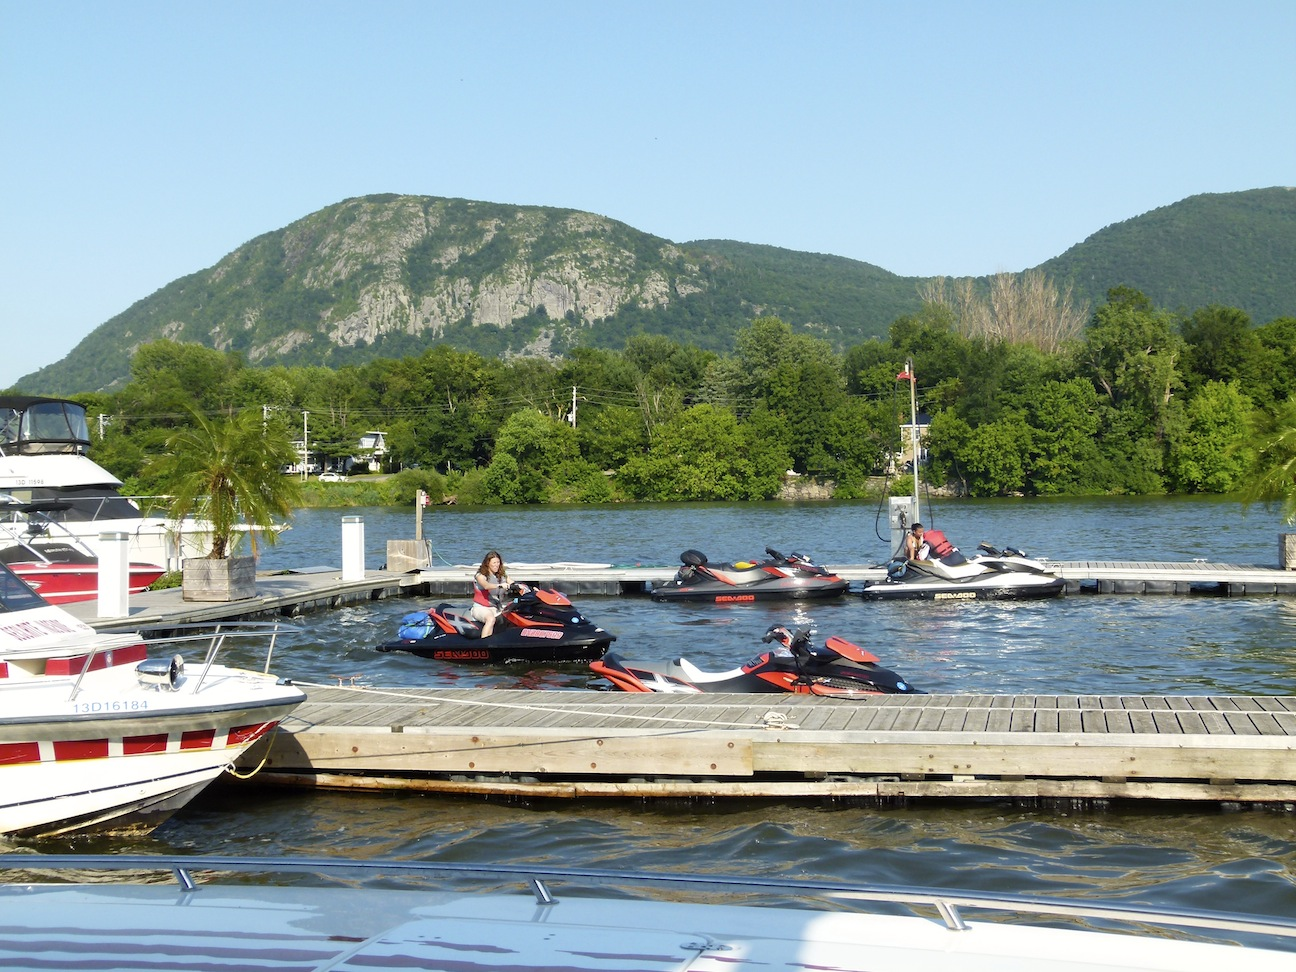 View of Mont-Saint-Hillaire on my Richelieu River Sea Doo Tour